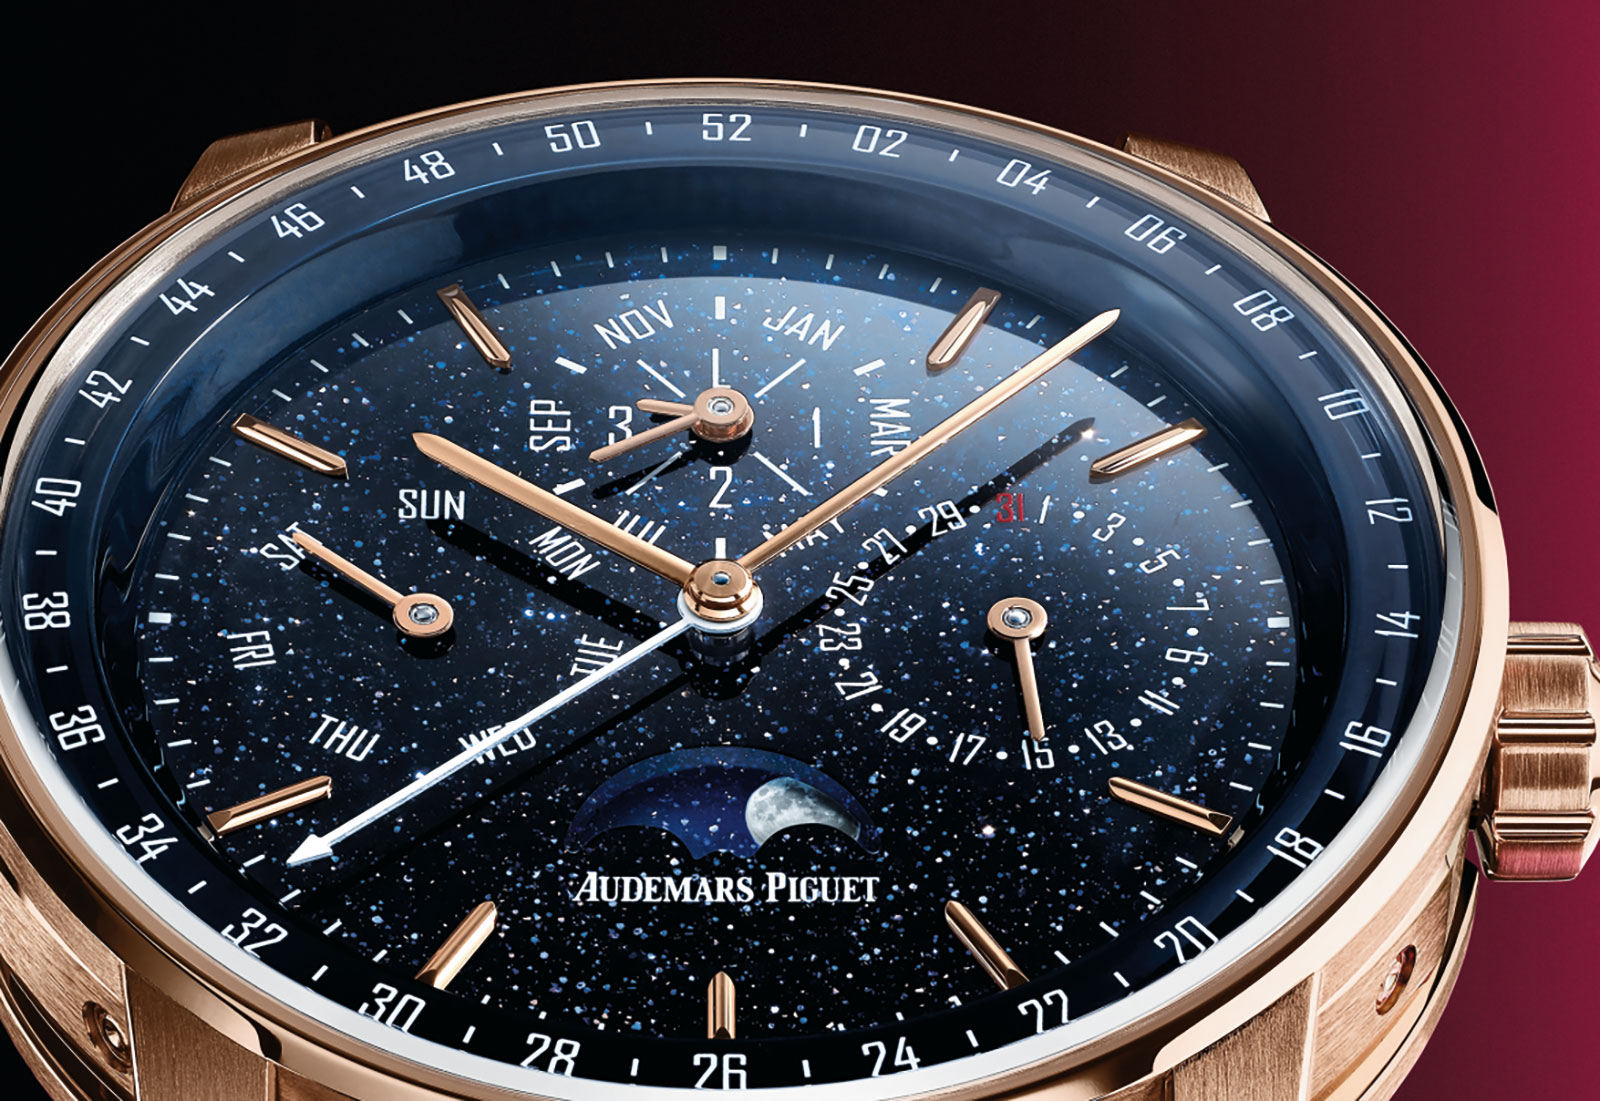 Perpetual Calendar Chronograph : Sihh audemars piguet code all you need to